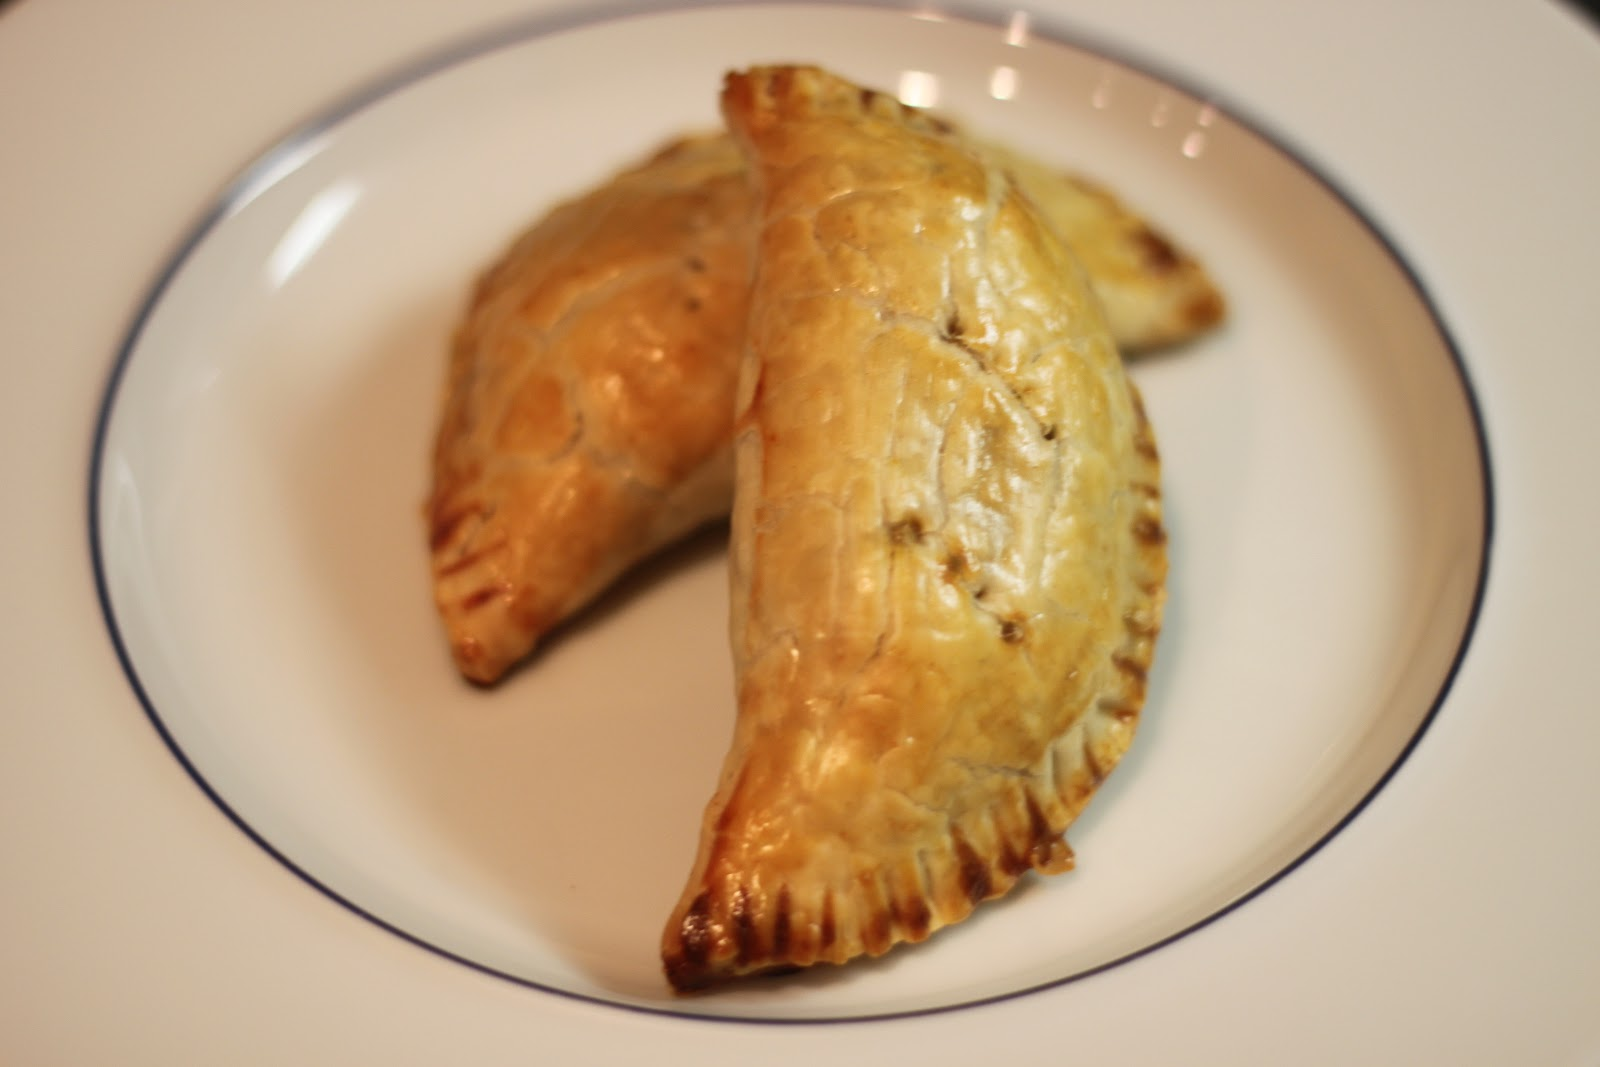 ... tummy for empanadas. i have tried all different varieties including